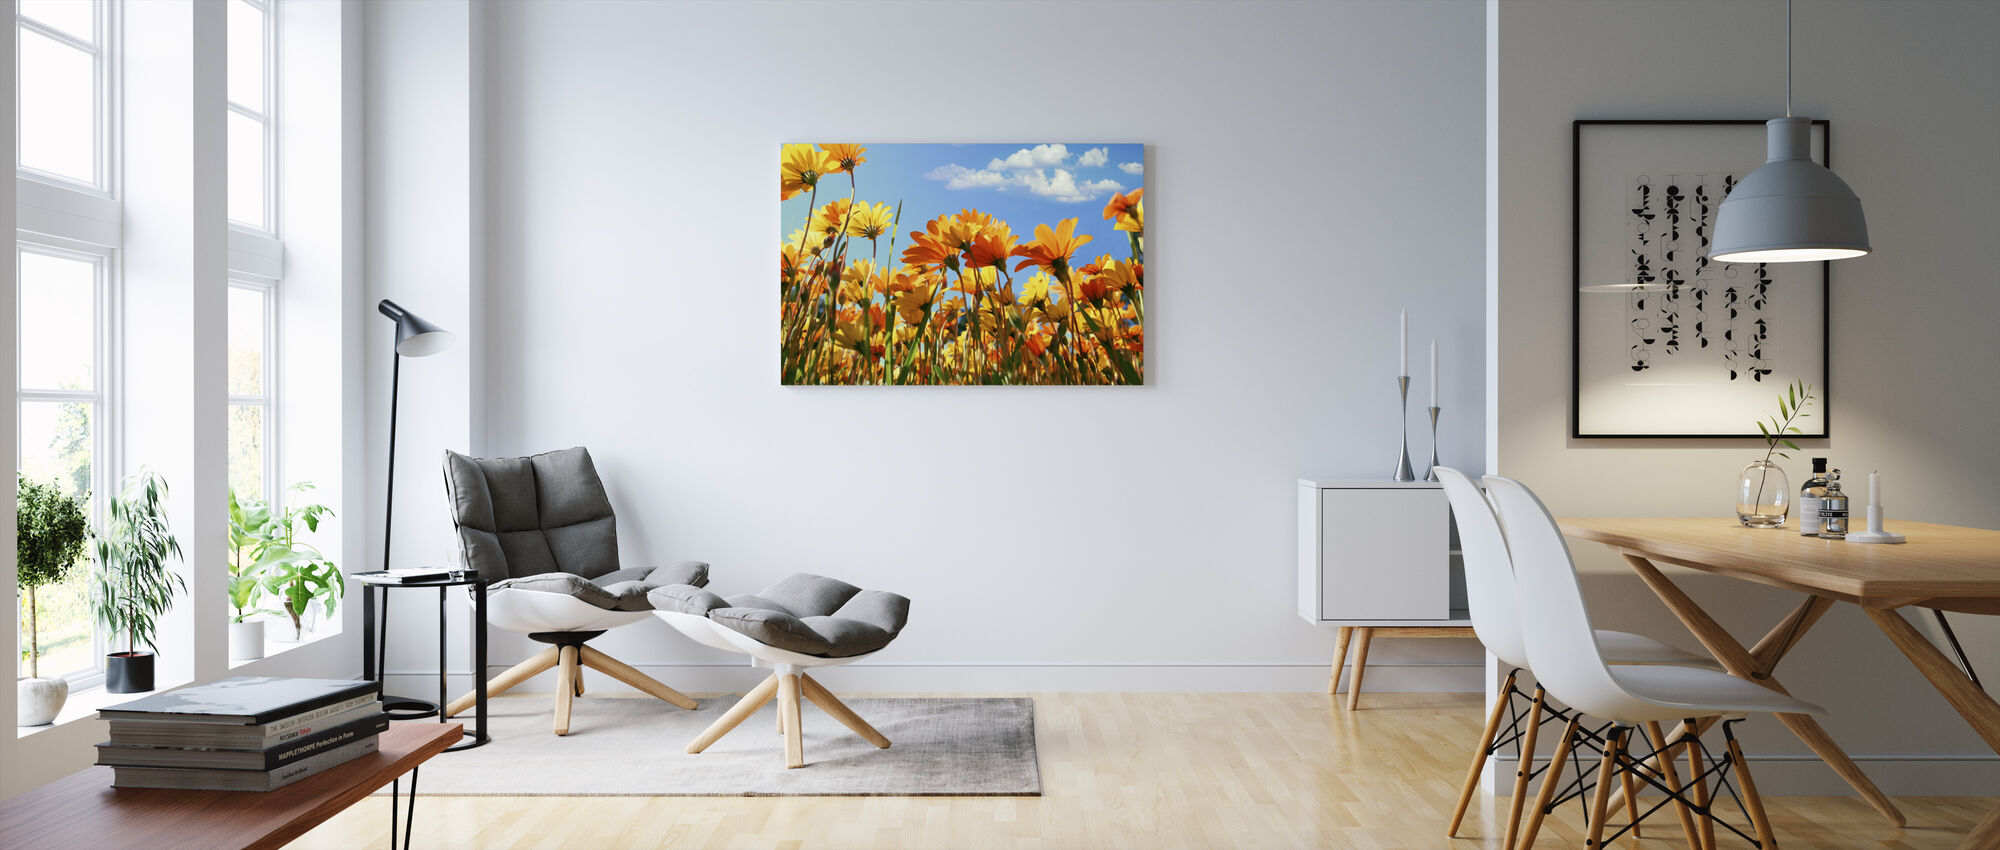 Spring Orange and Yellow Wildflowers - Canvas print - Living Room